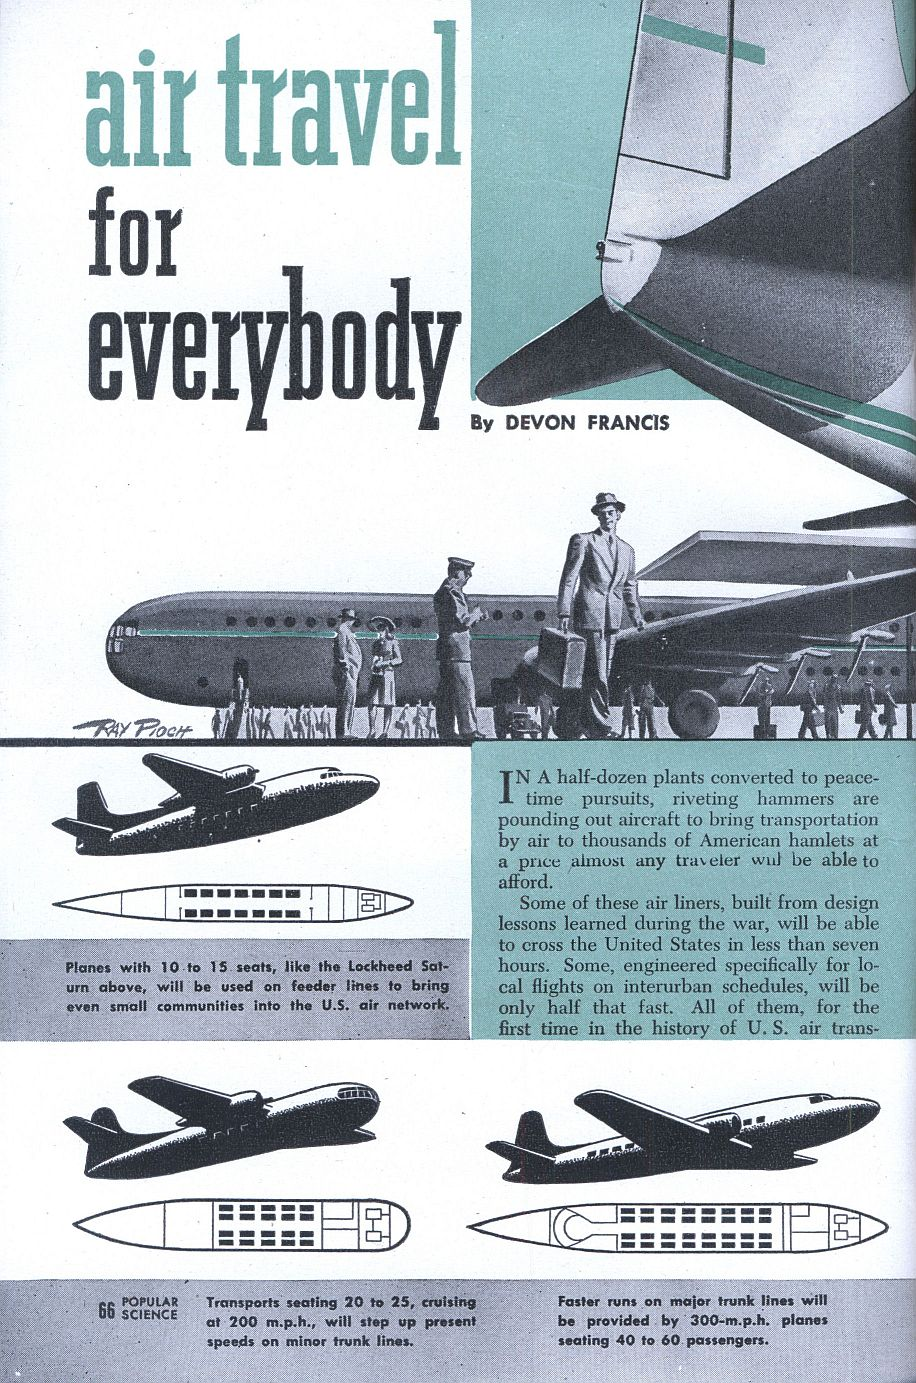 1946 airtravel for everybody